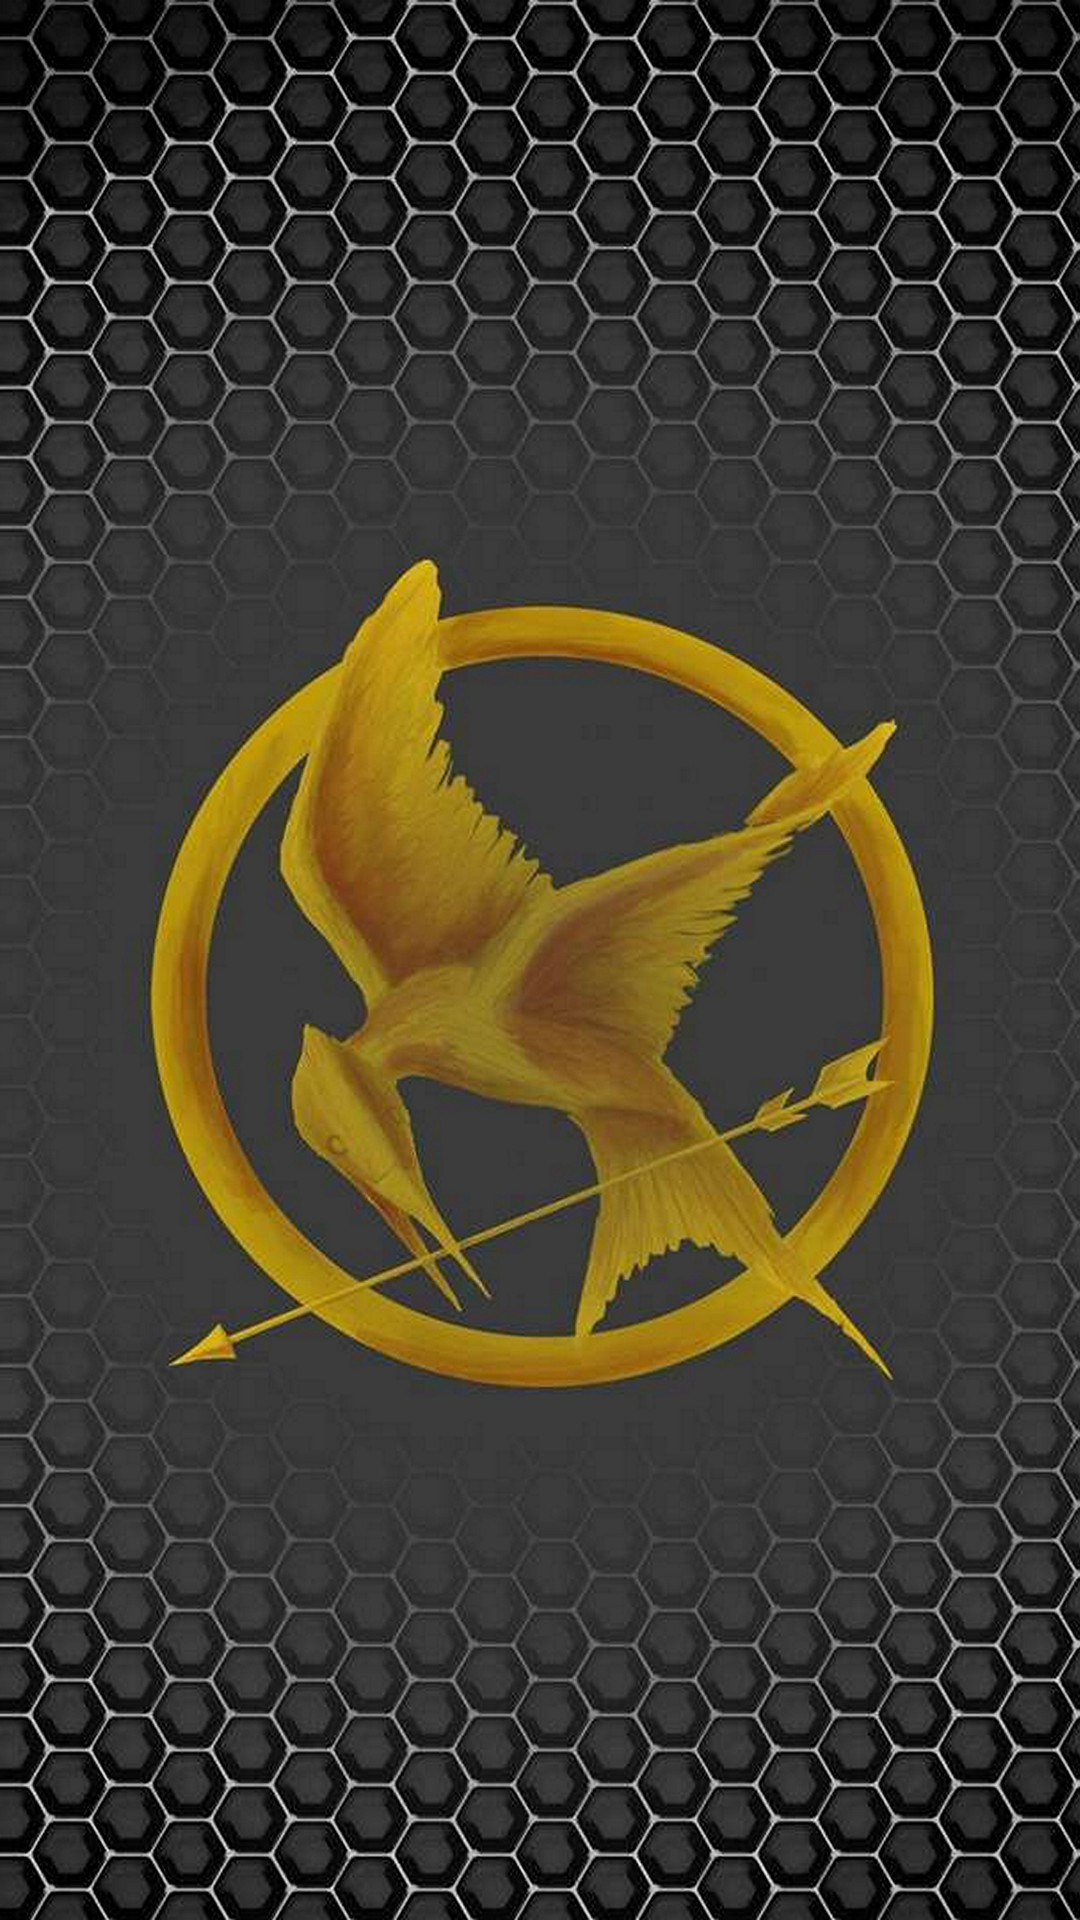 1080x1920 Mockingjay, Catching Fire, The Hunger Games, Entertainment Backgrounds,  wallpapers for Samsung Galaxy